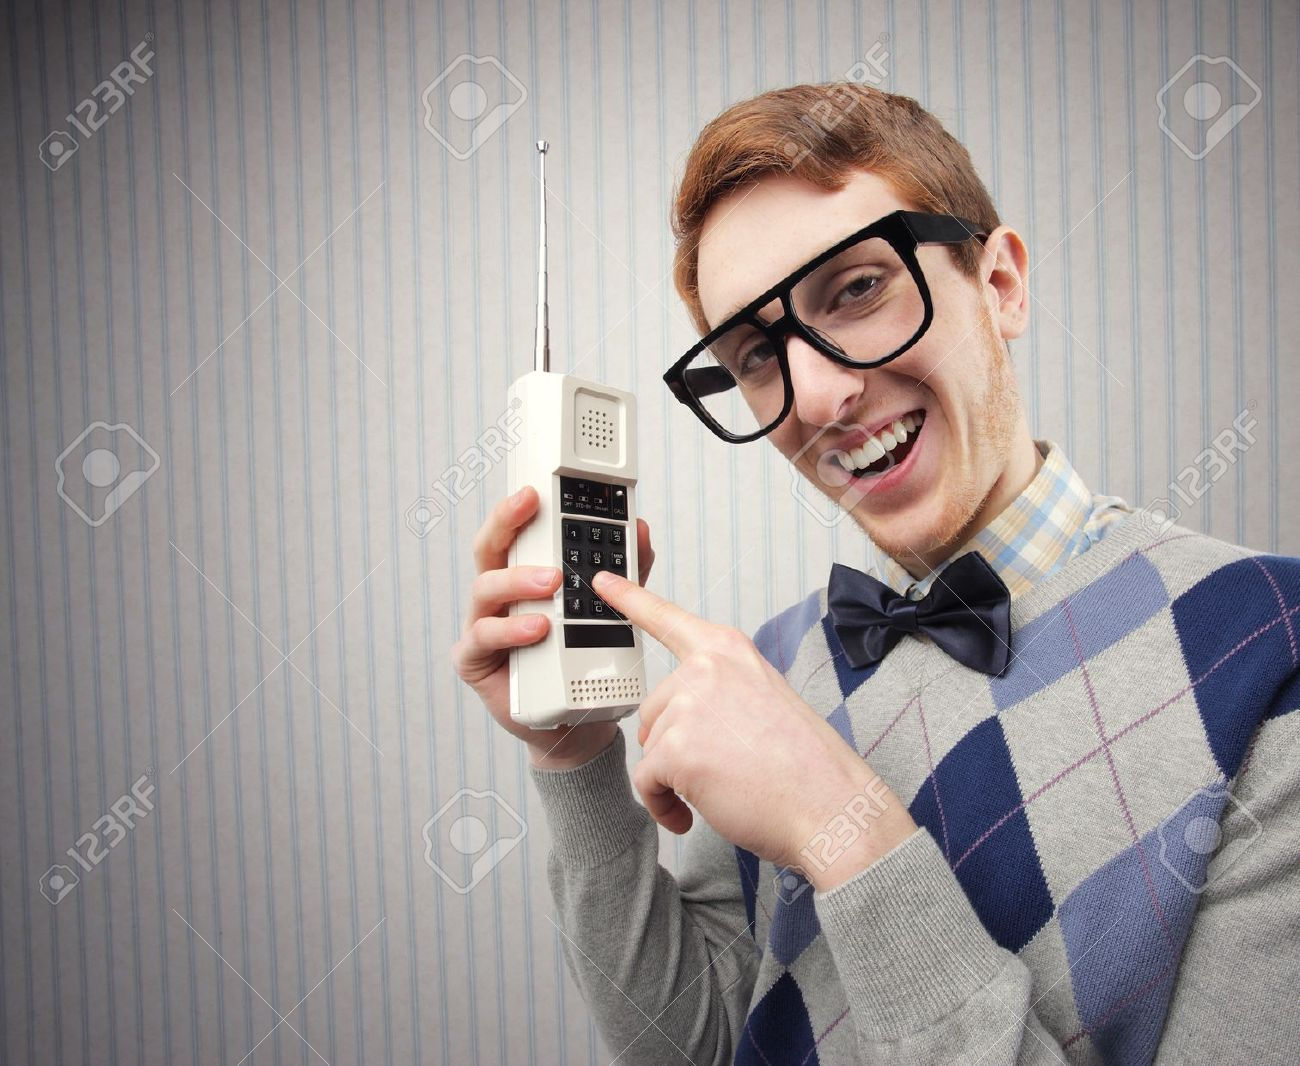 Nathaniel nerd with telephone phone